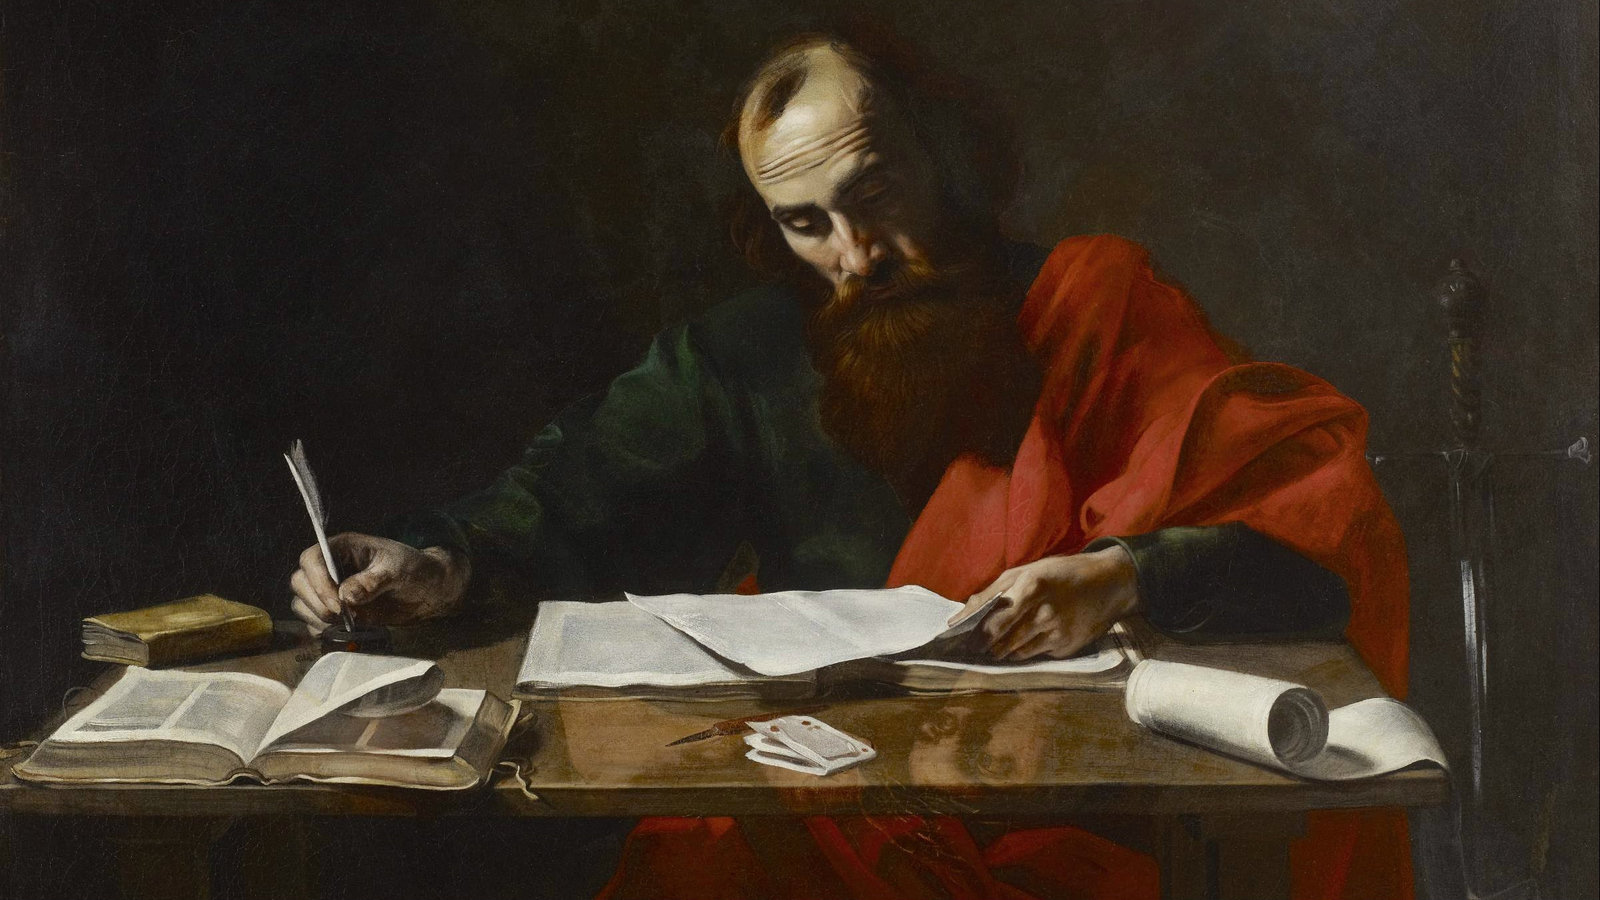 The Apostle Paul Writing Books